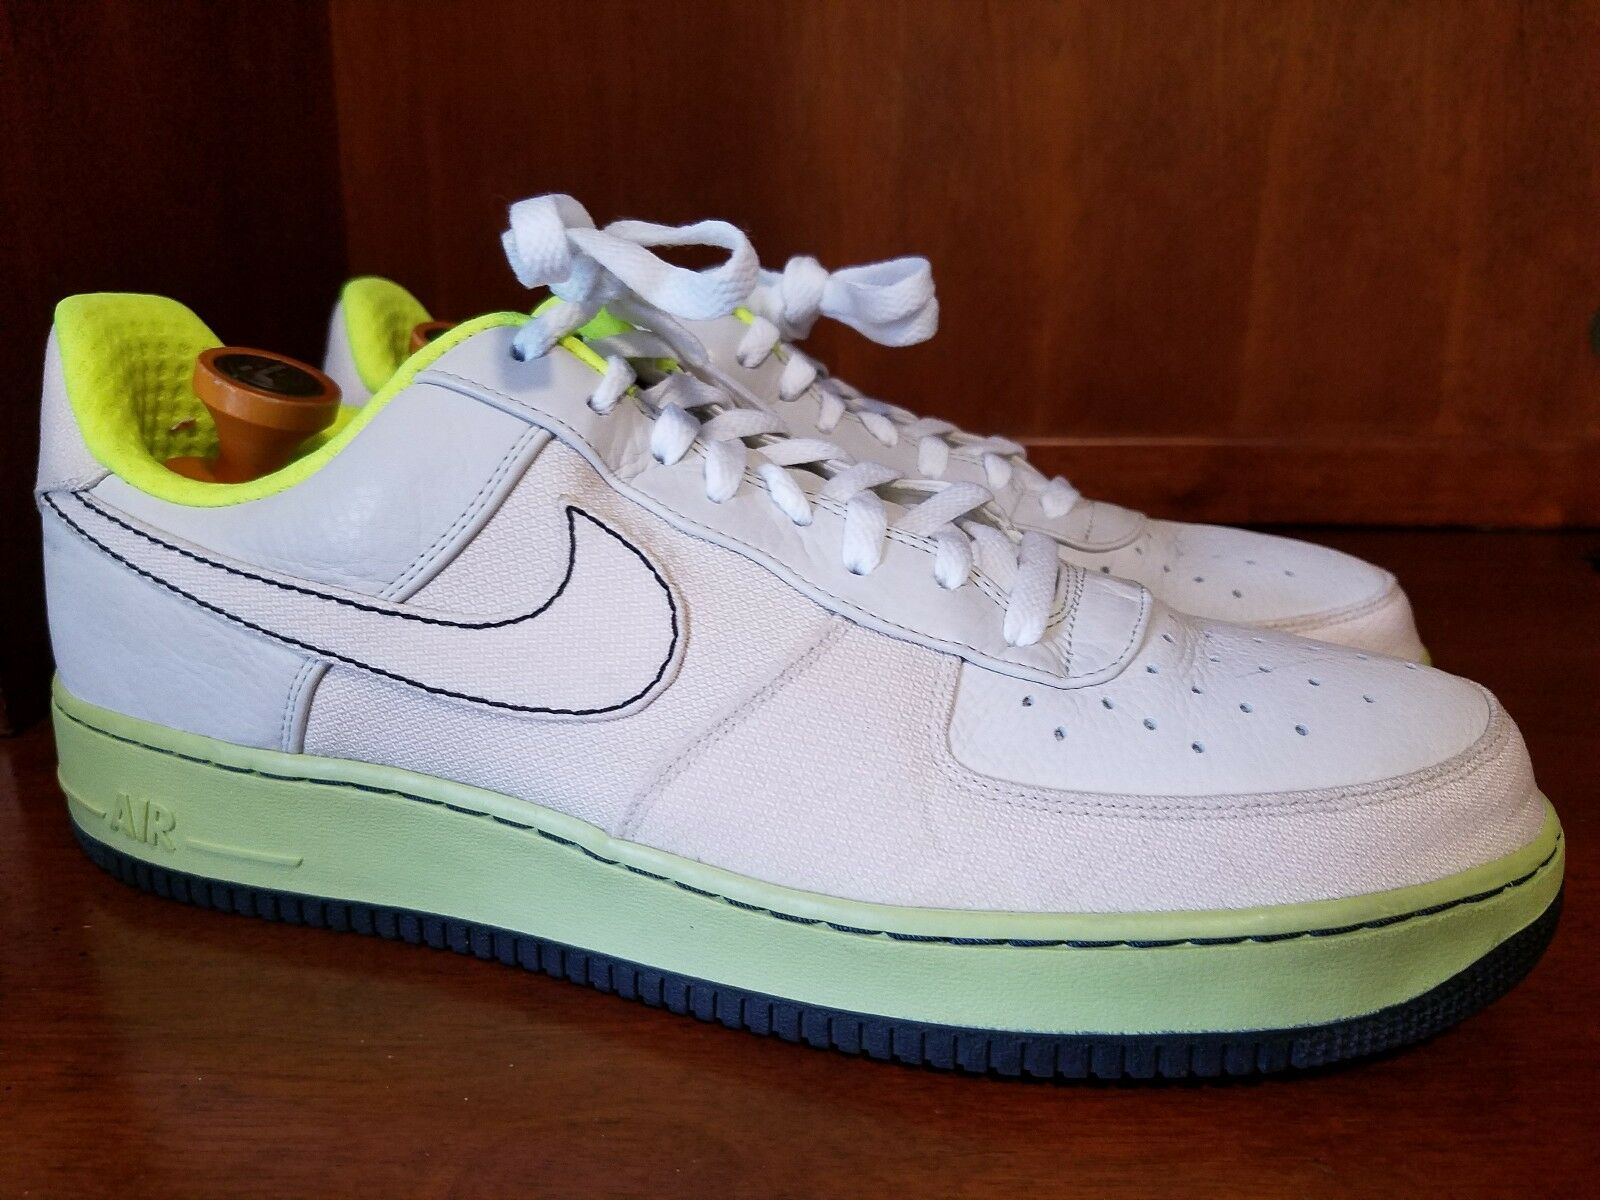 Nike Air Force 1 Premium US 07 Fashion Sneakers Size US Premium 14, 315180-002 201194